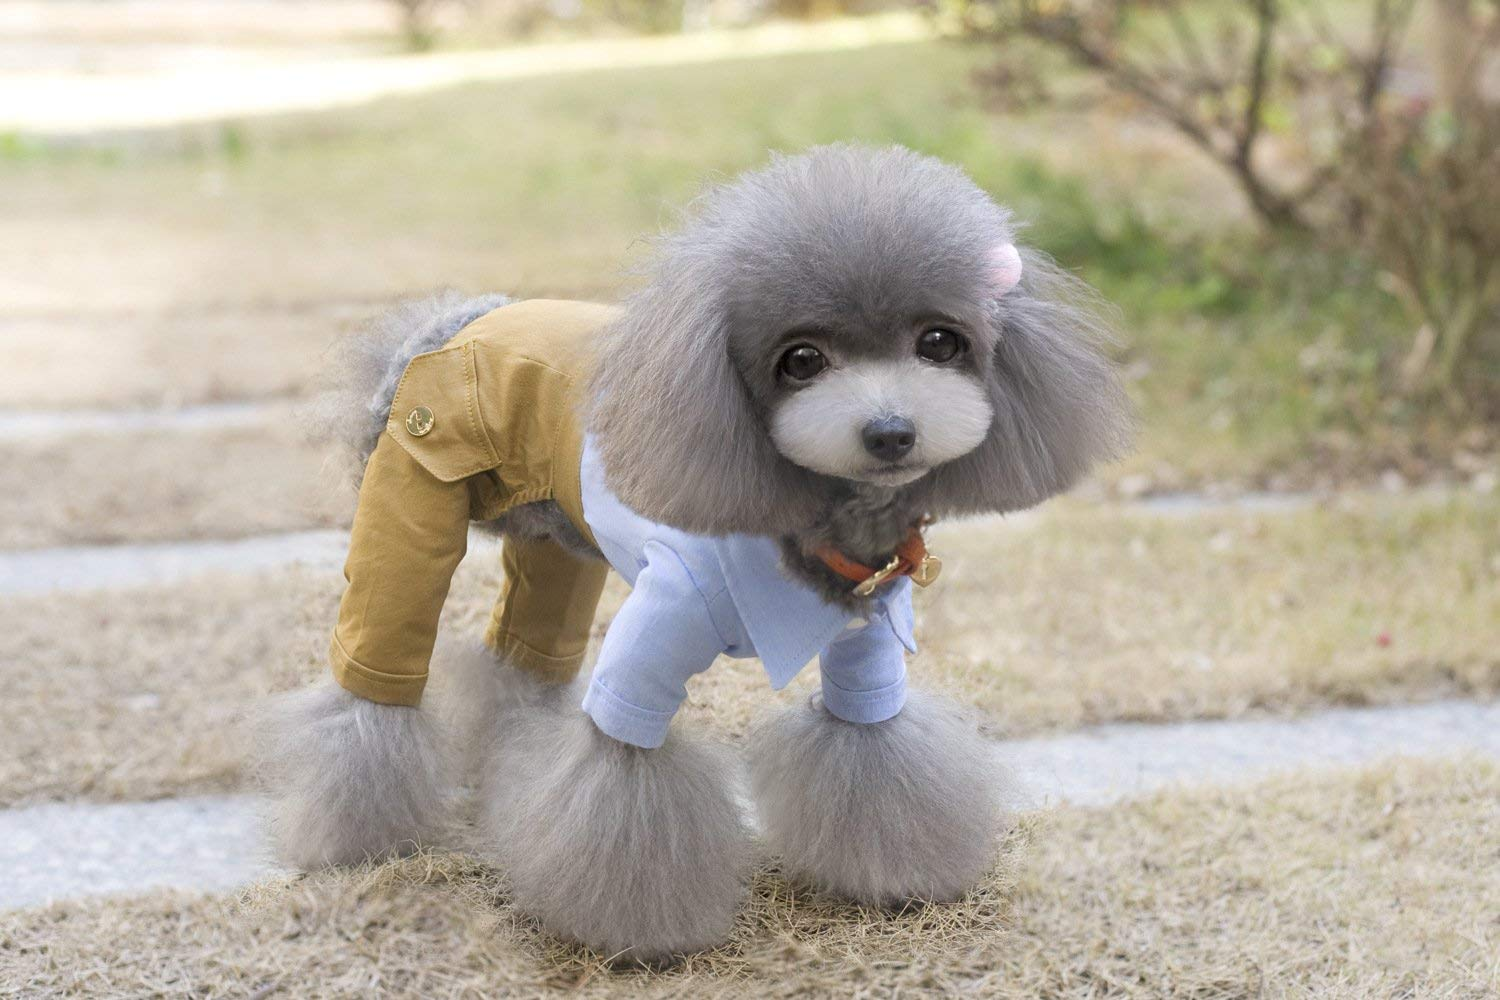 bluee S bluee S Doggy Costume Pet Clothes Teddy Four-Legged Pants Braided Straps British Pants (color   bluee, Size   M) Pet Dog Clothes (color   bluee, Size   S)